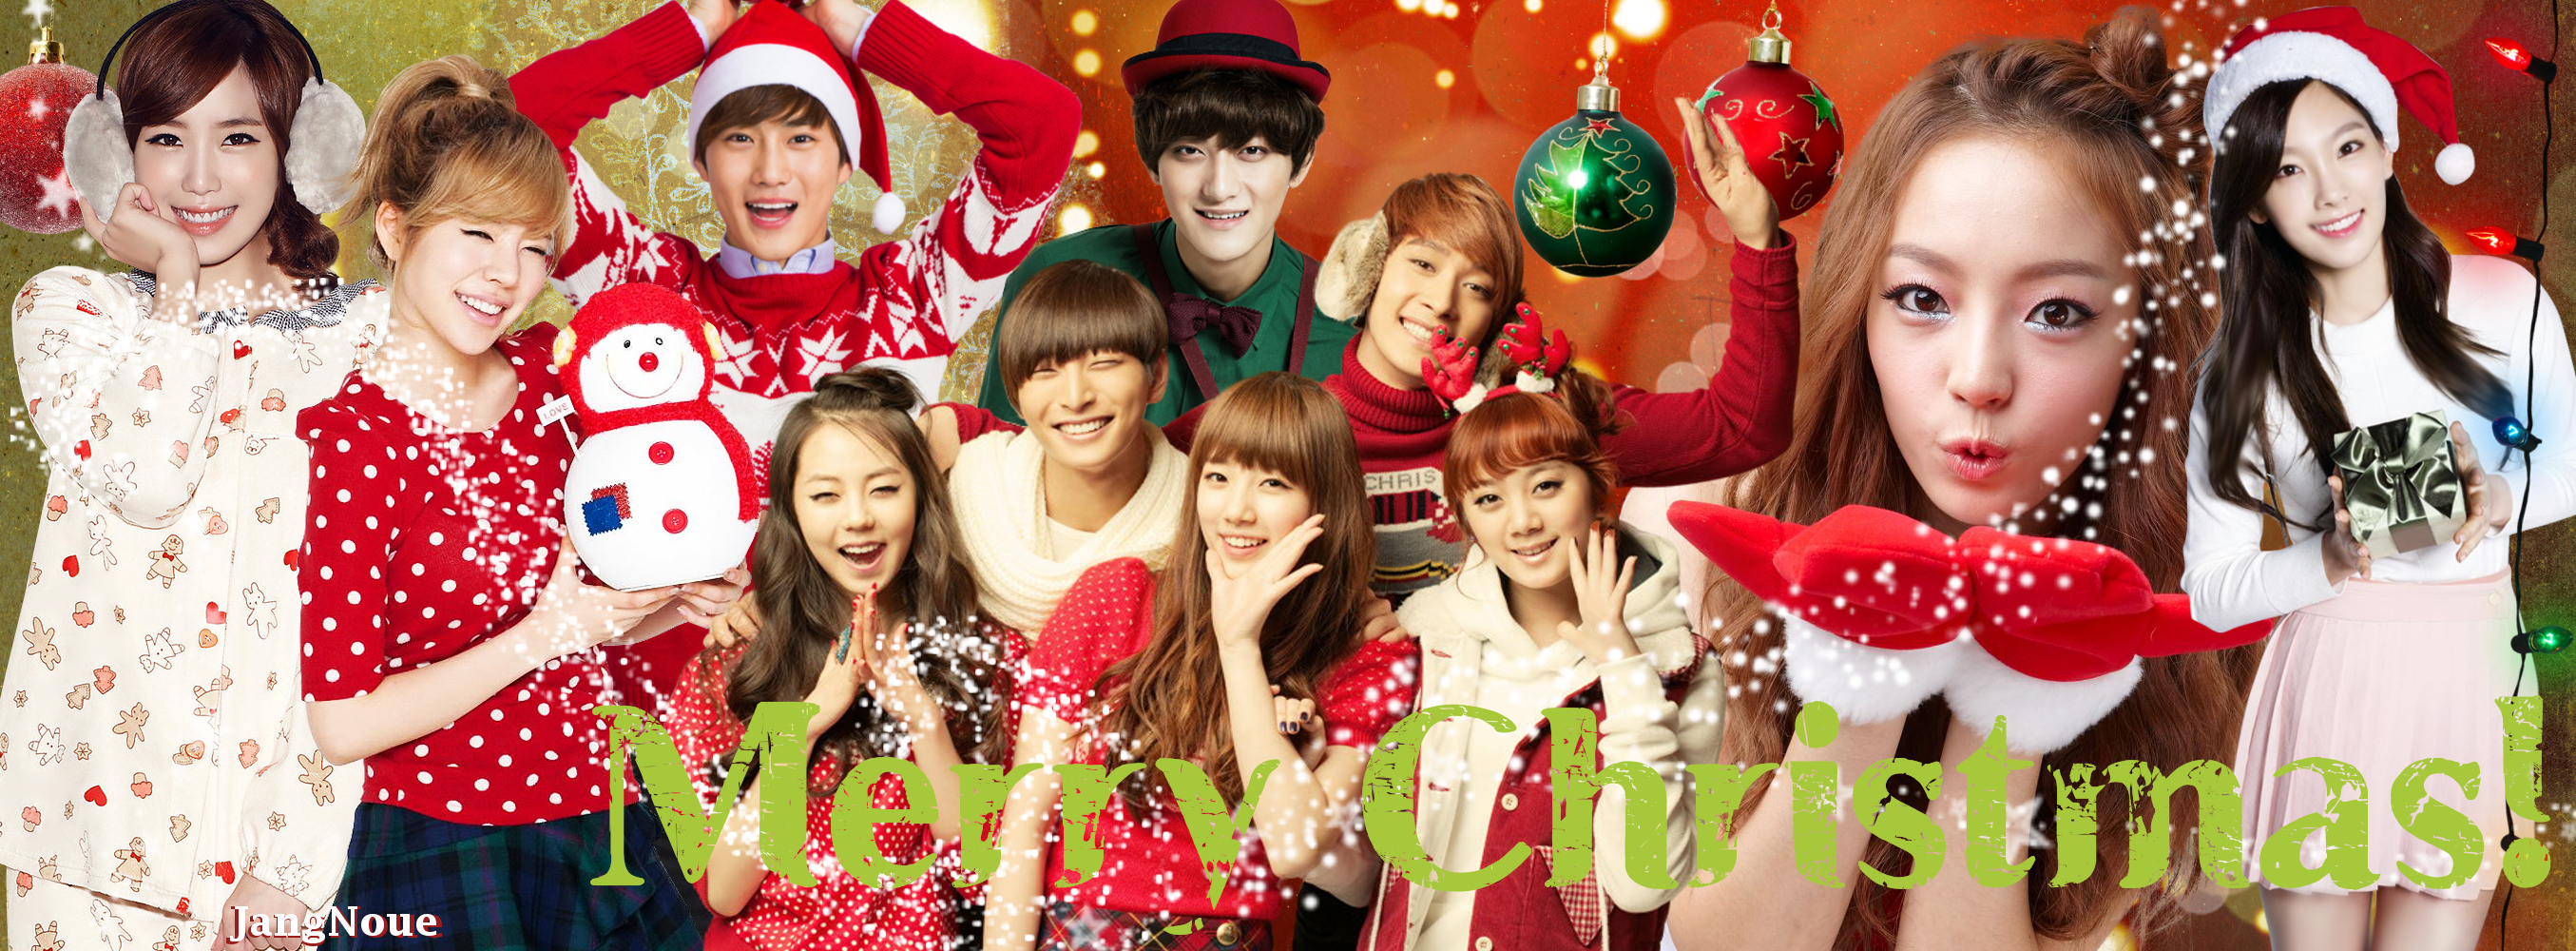 K Pop Christmas Facebook Cover By Jangnoue On Deviantart